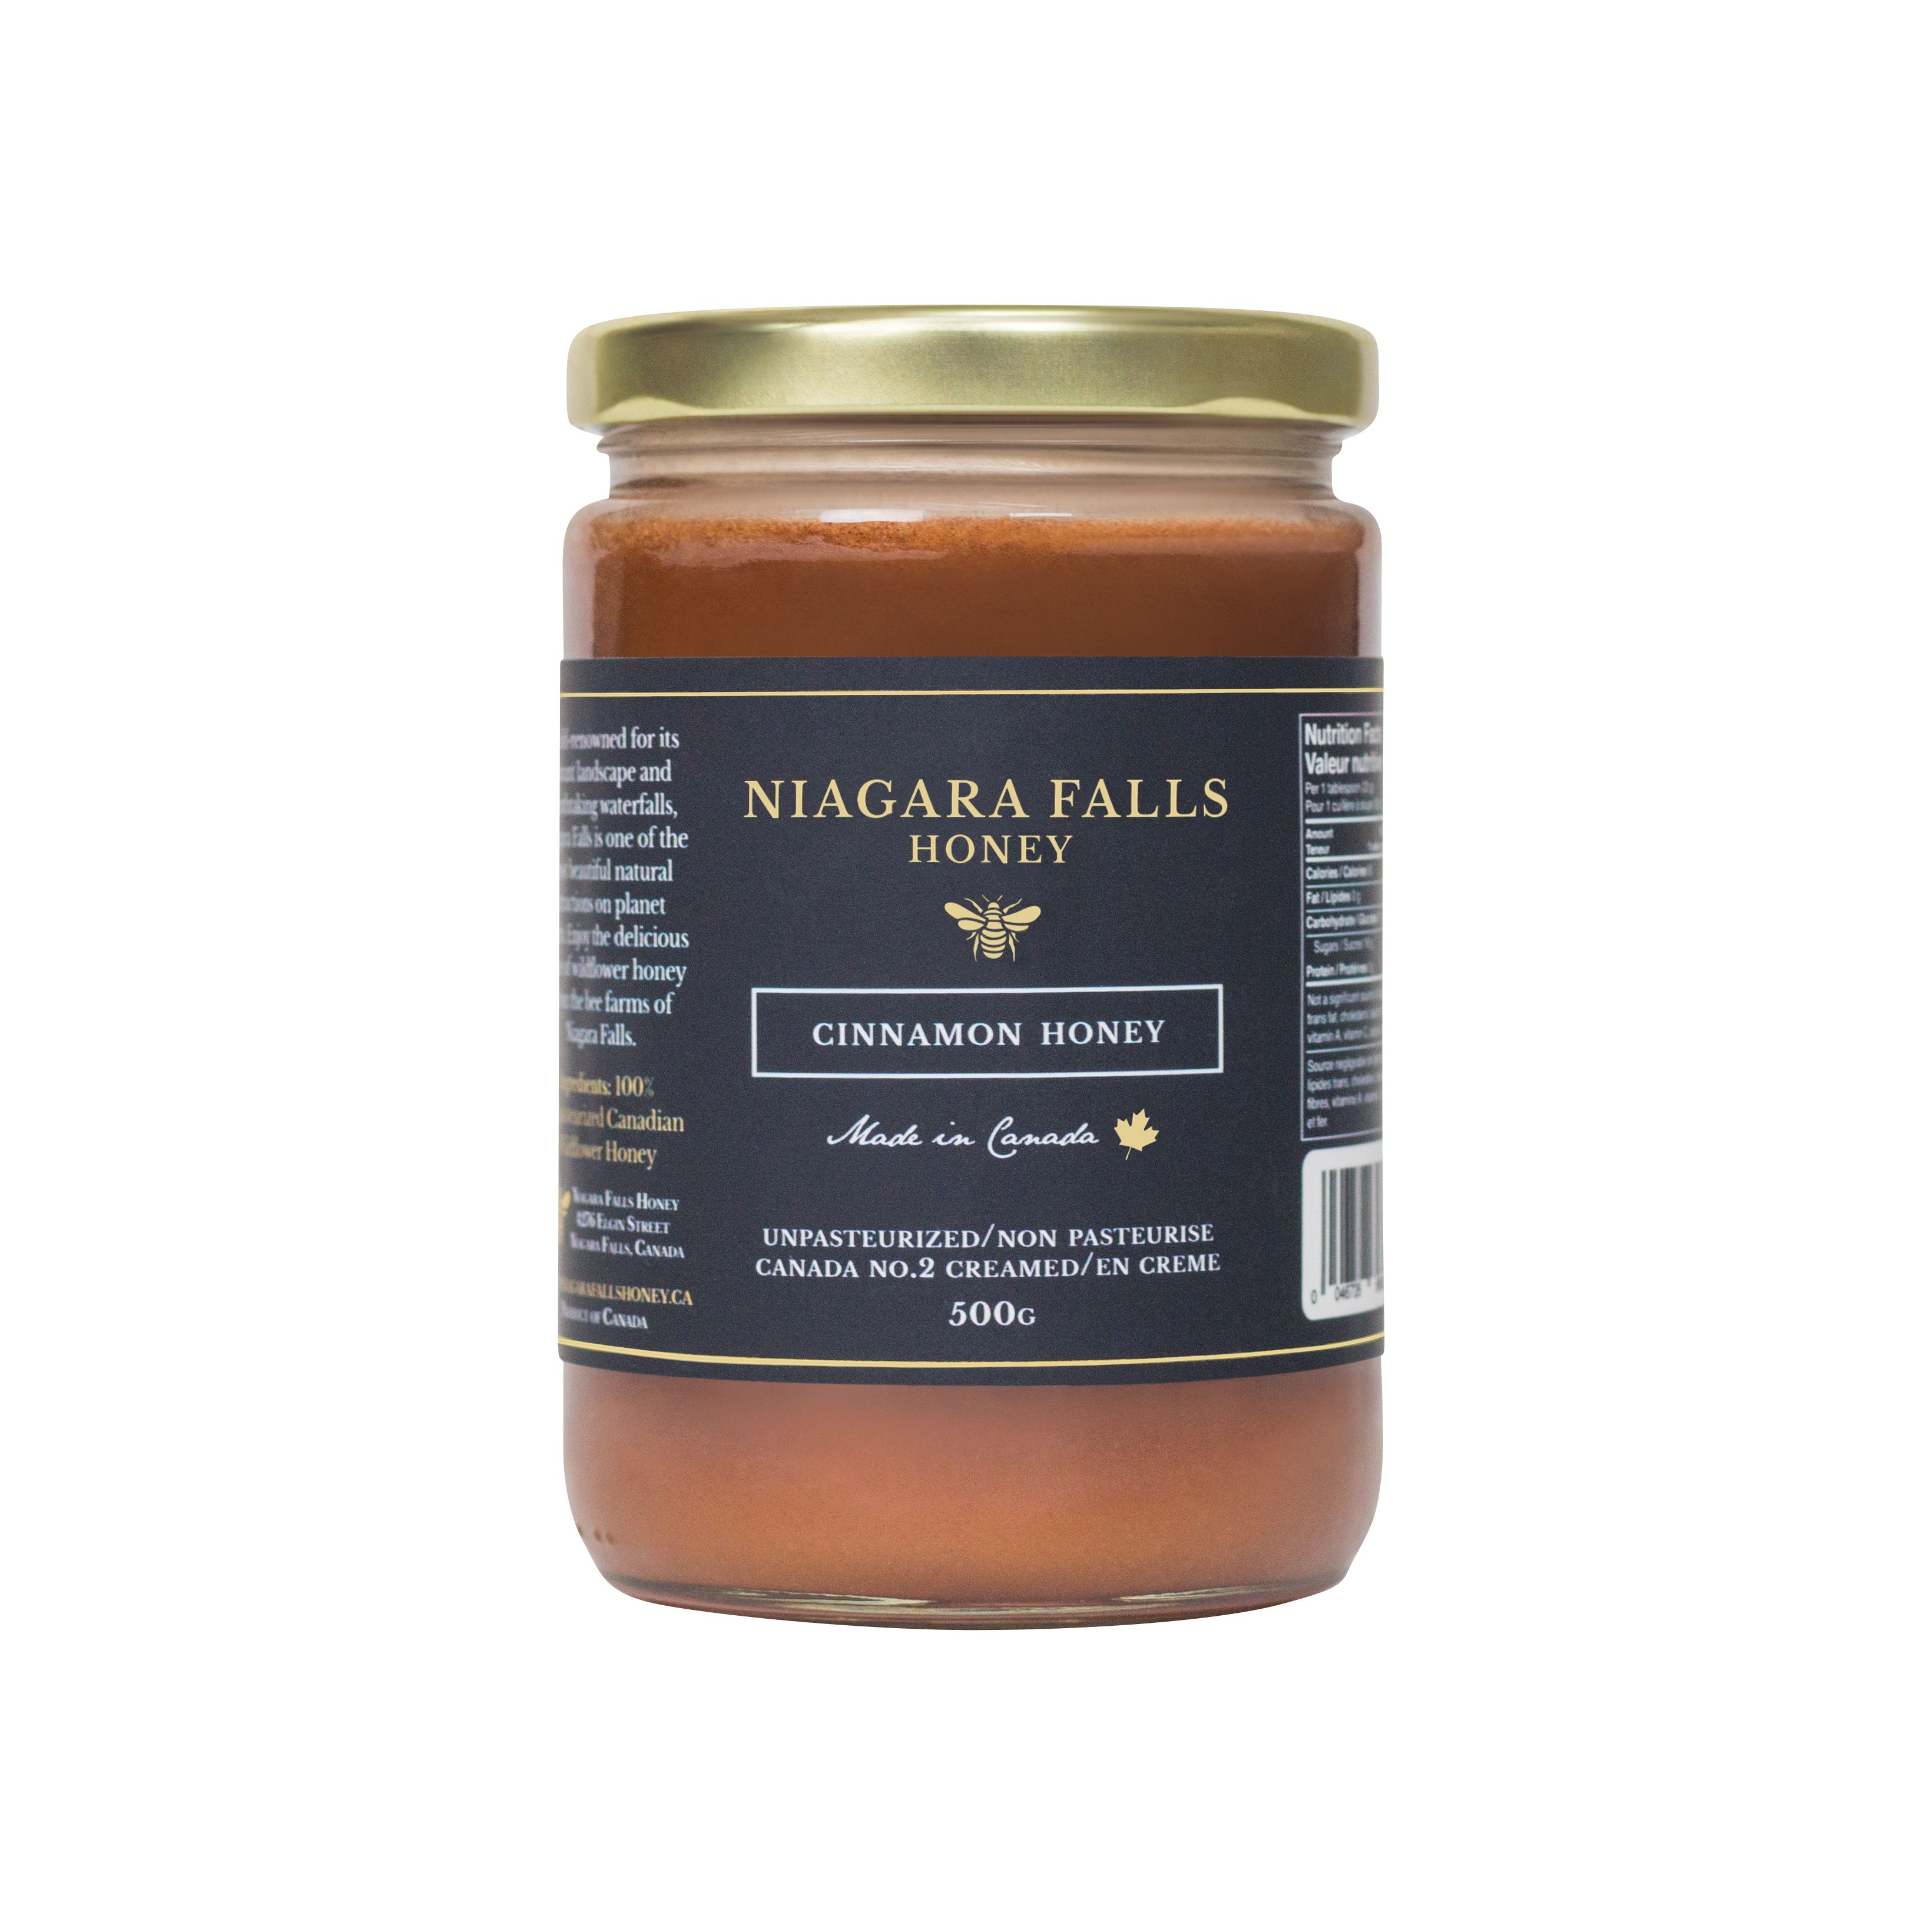 Enjoy the delicious taste of Canadian cream honey and